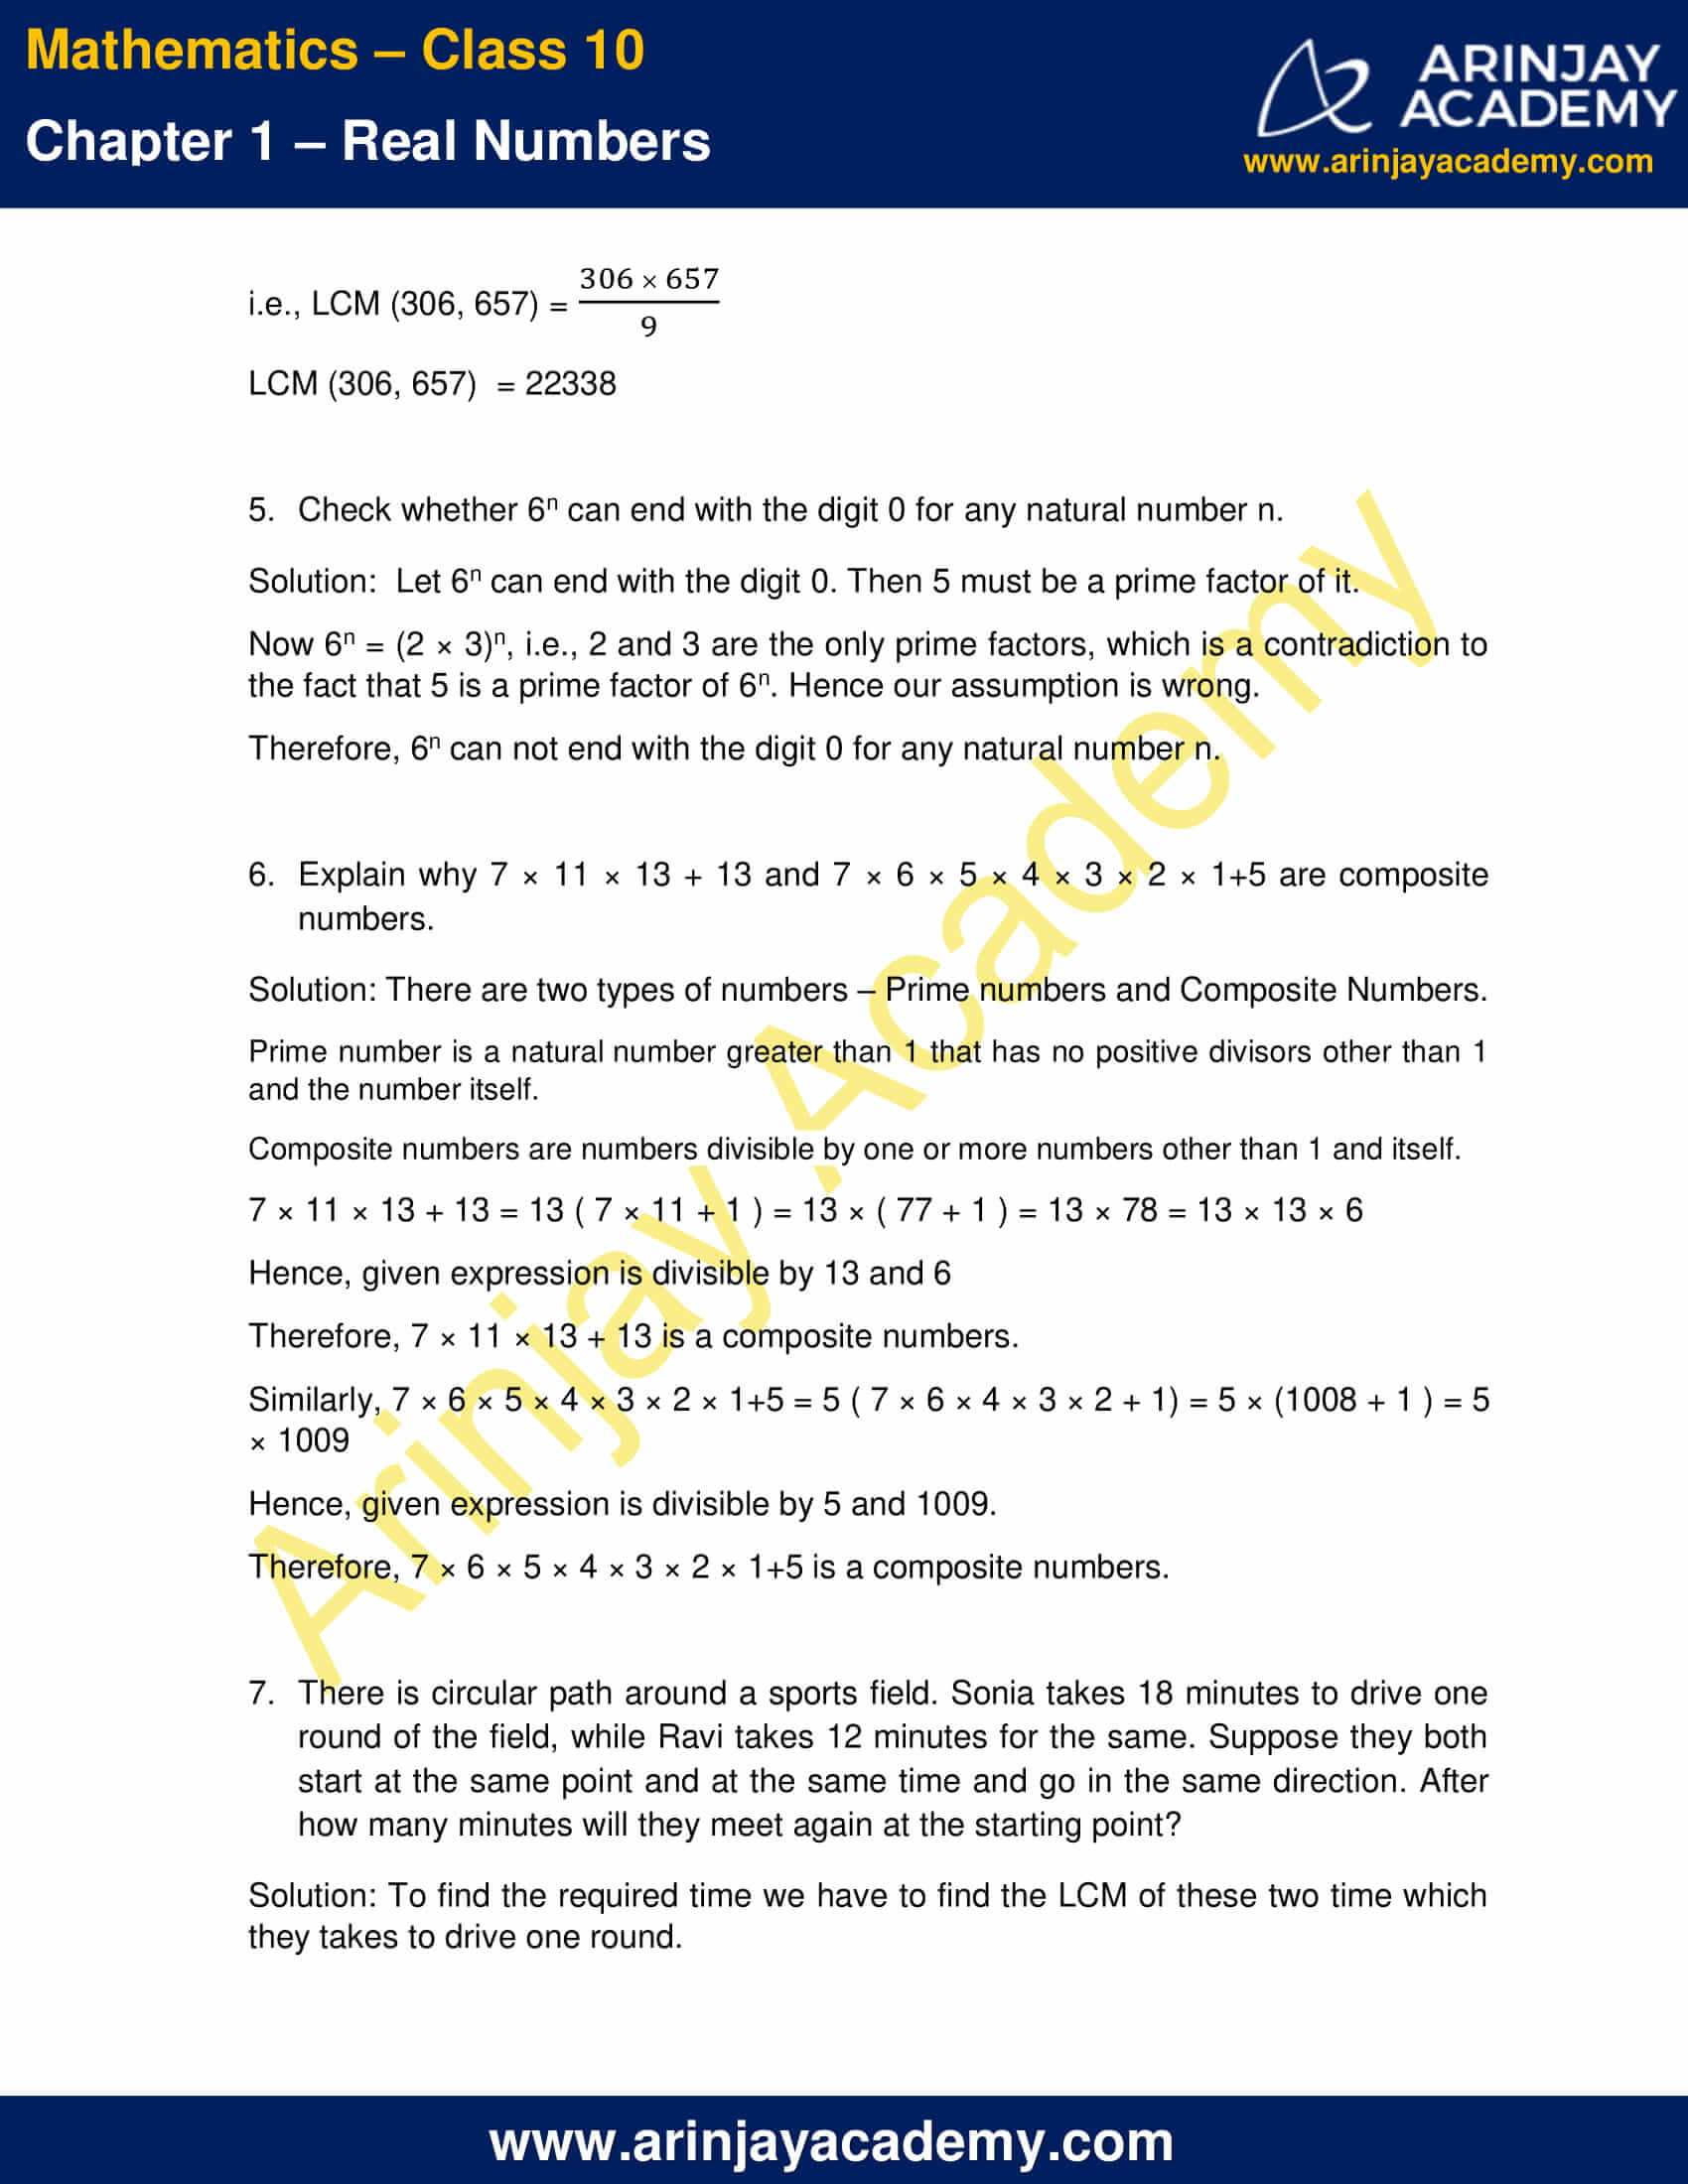 NCERT Solutions For Class 10 Maths Chapter 1 Exercise 1.2 part 3